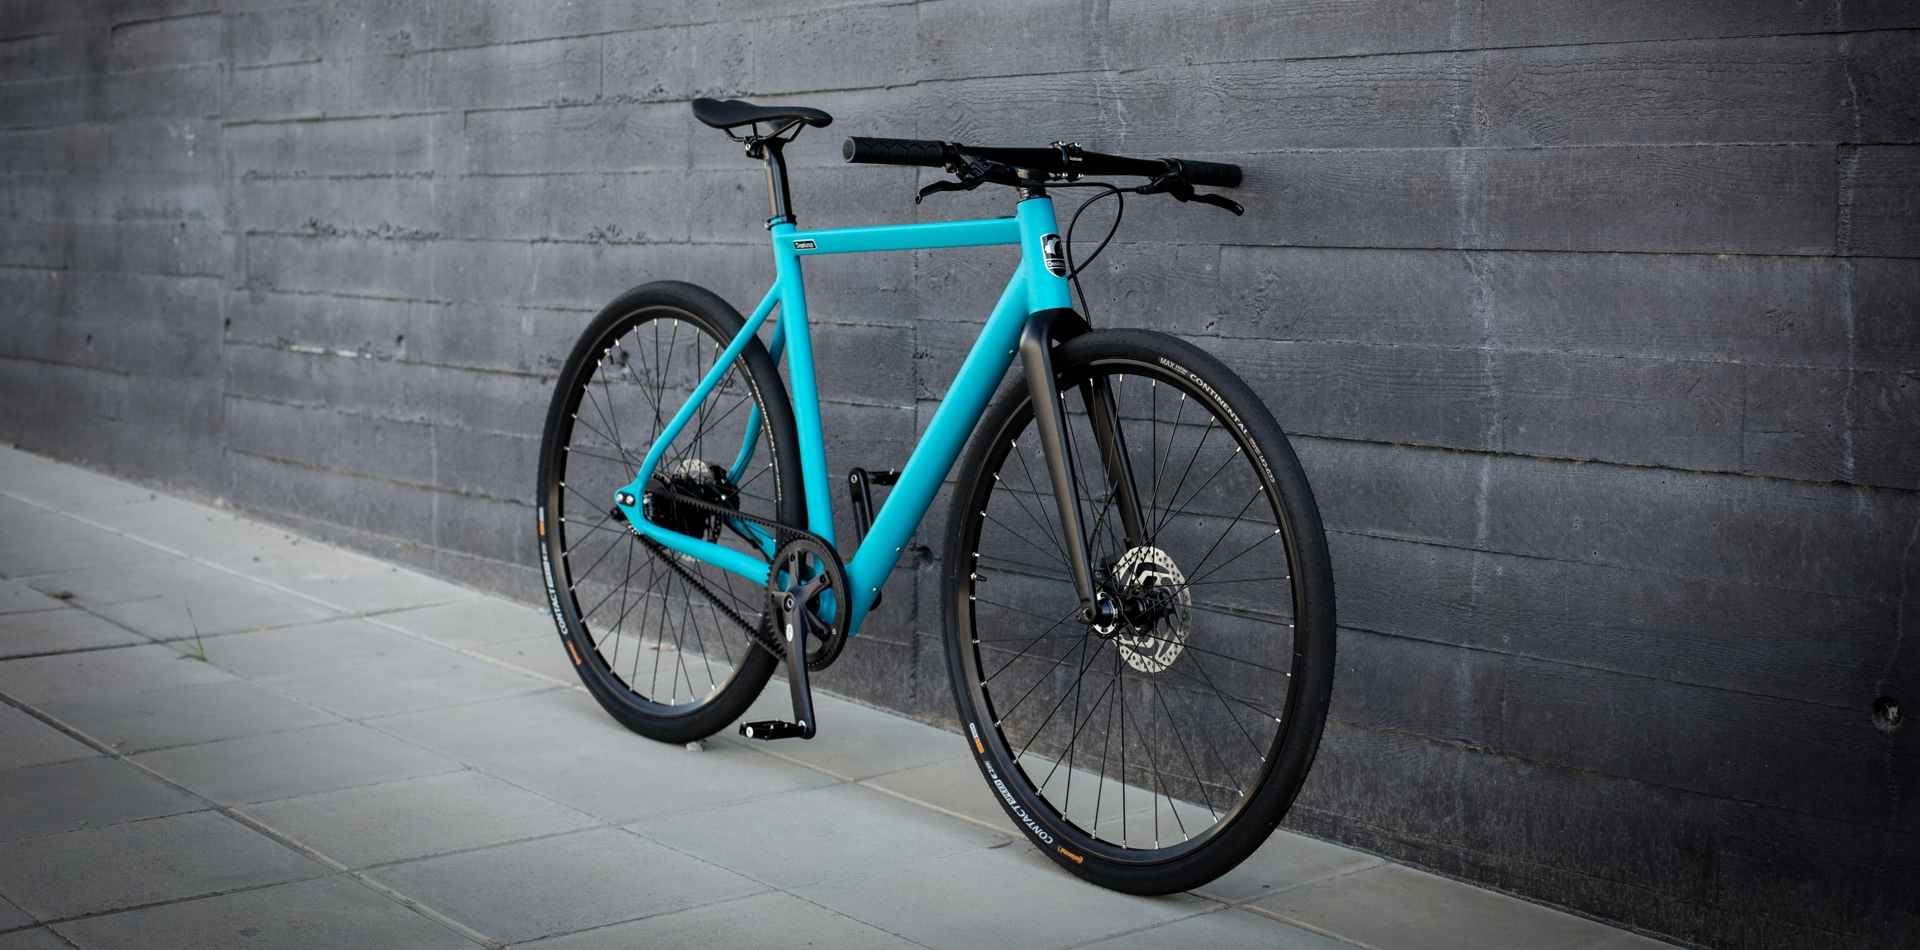 Desiknio Single Speed - E-BIKE REVIEW AND NEWS